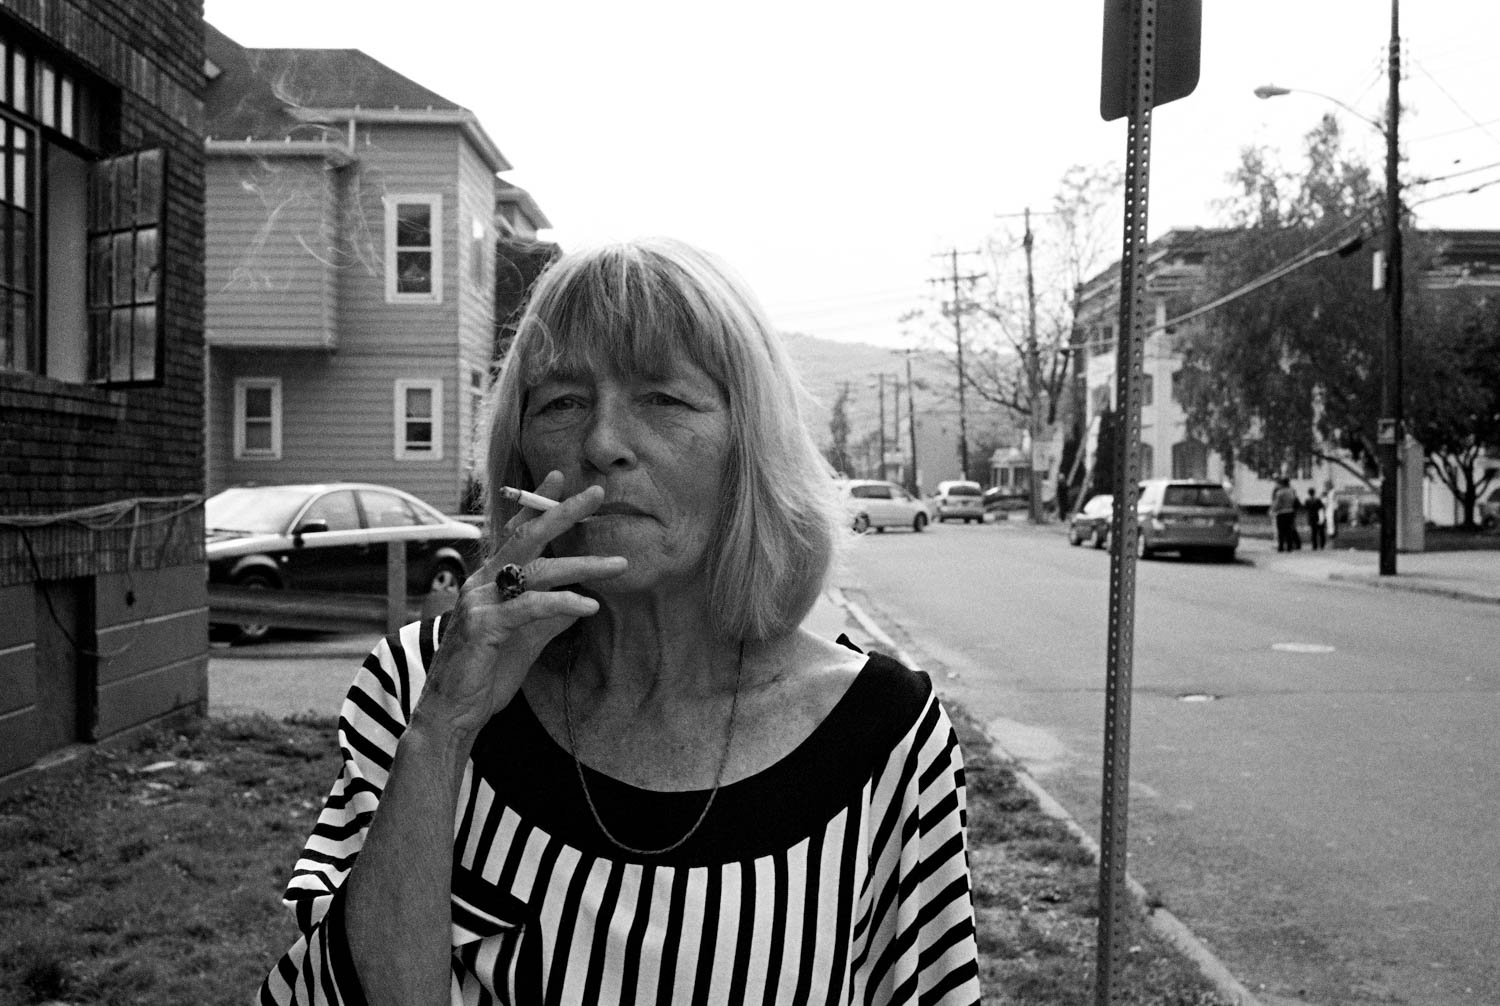 Black and white street photograph of an older woman in a vertical stripe shirt smoking a cigarette in Binghamton, NY.